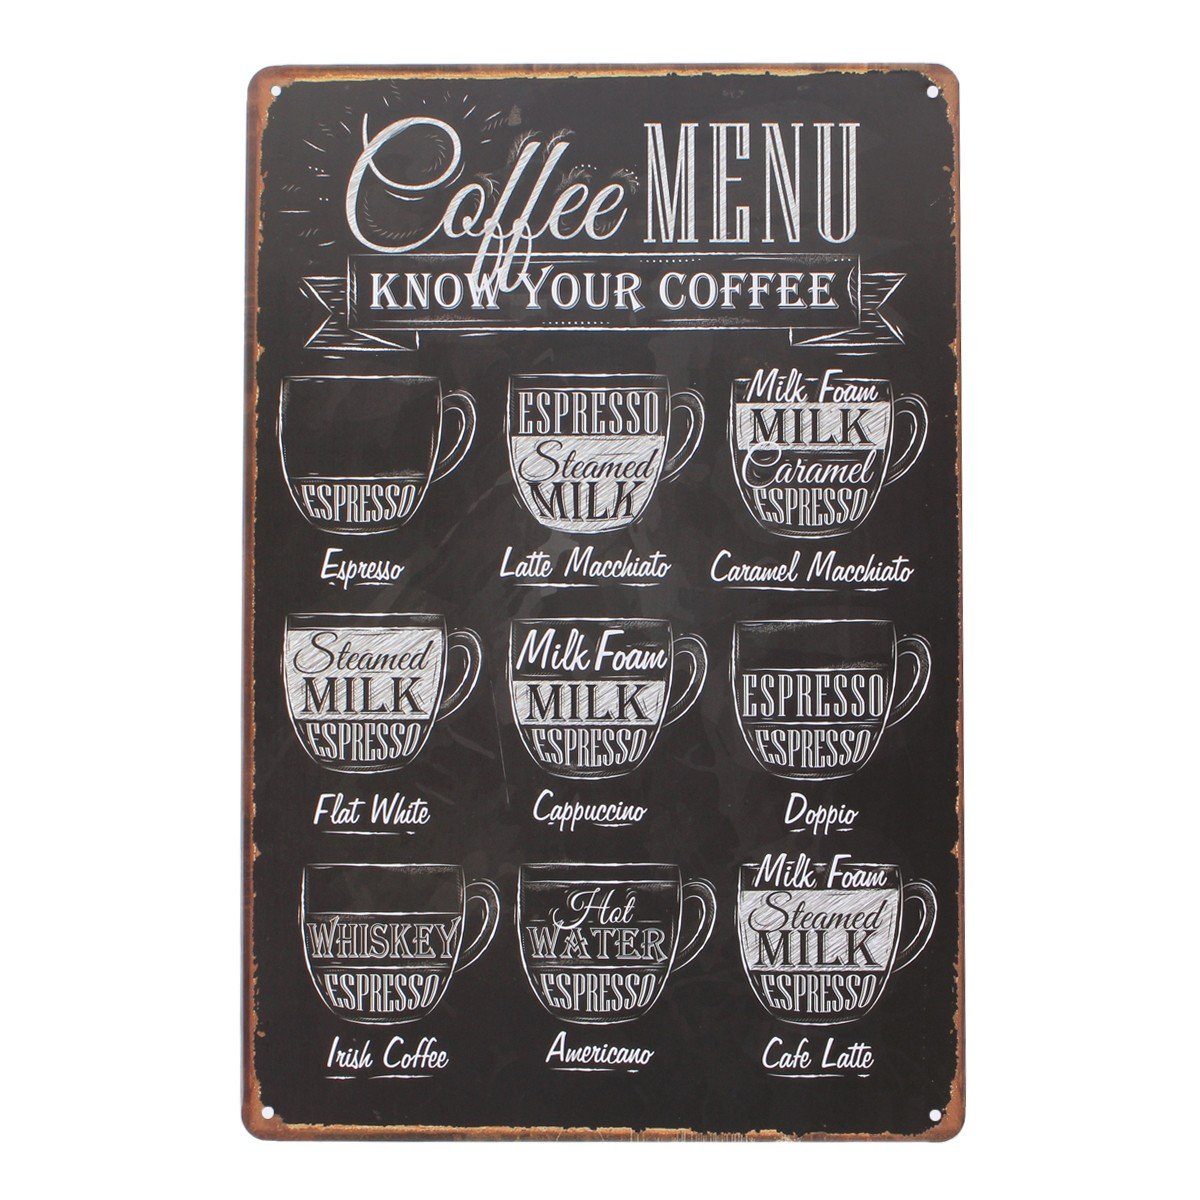 Yesurprise Vintage Tin Signs Retro Decorative Metal Wall Art Decor Plaque Decorations for Home Living Room Cafe Theme Hotel Bar - 12x 8 Coffee Menu